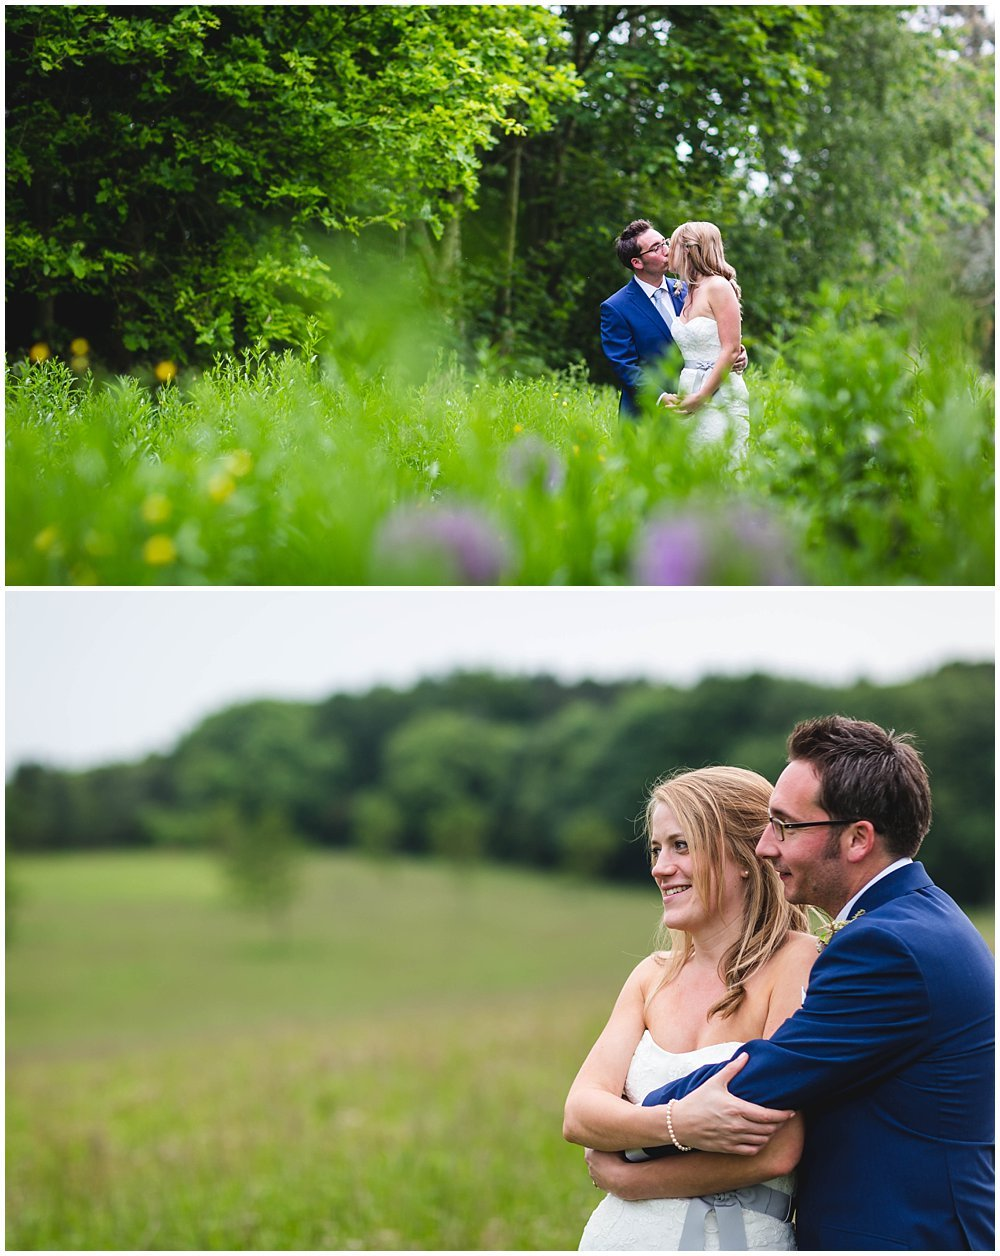 MEGHAN AND JAMES CHAUCER BARN WEDDING - NORFOLK AND NORWICH WEDDING PHOTOGRAPHER 54